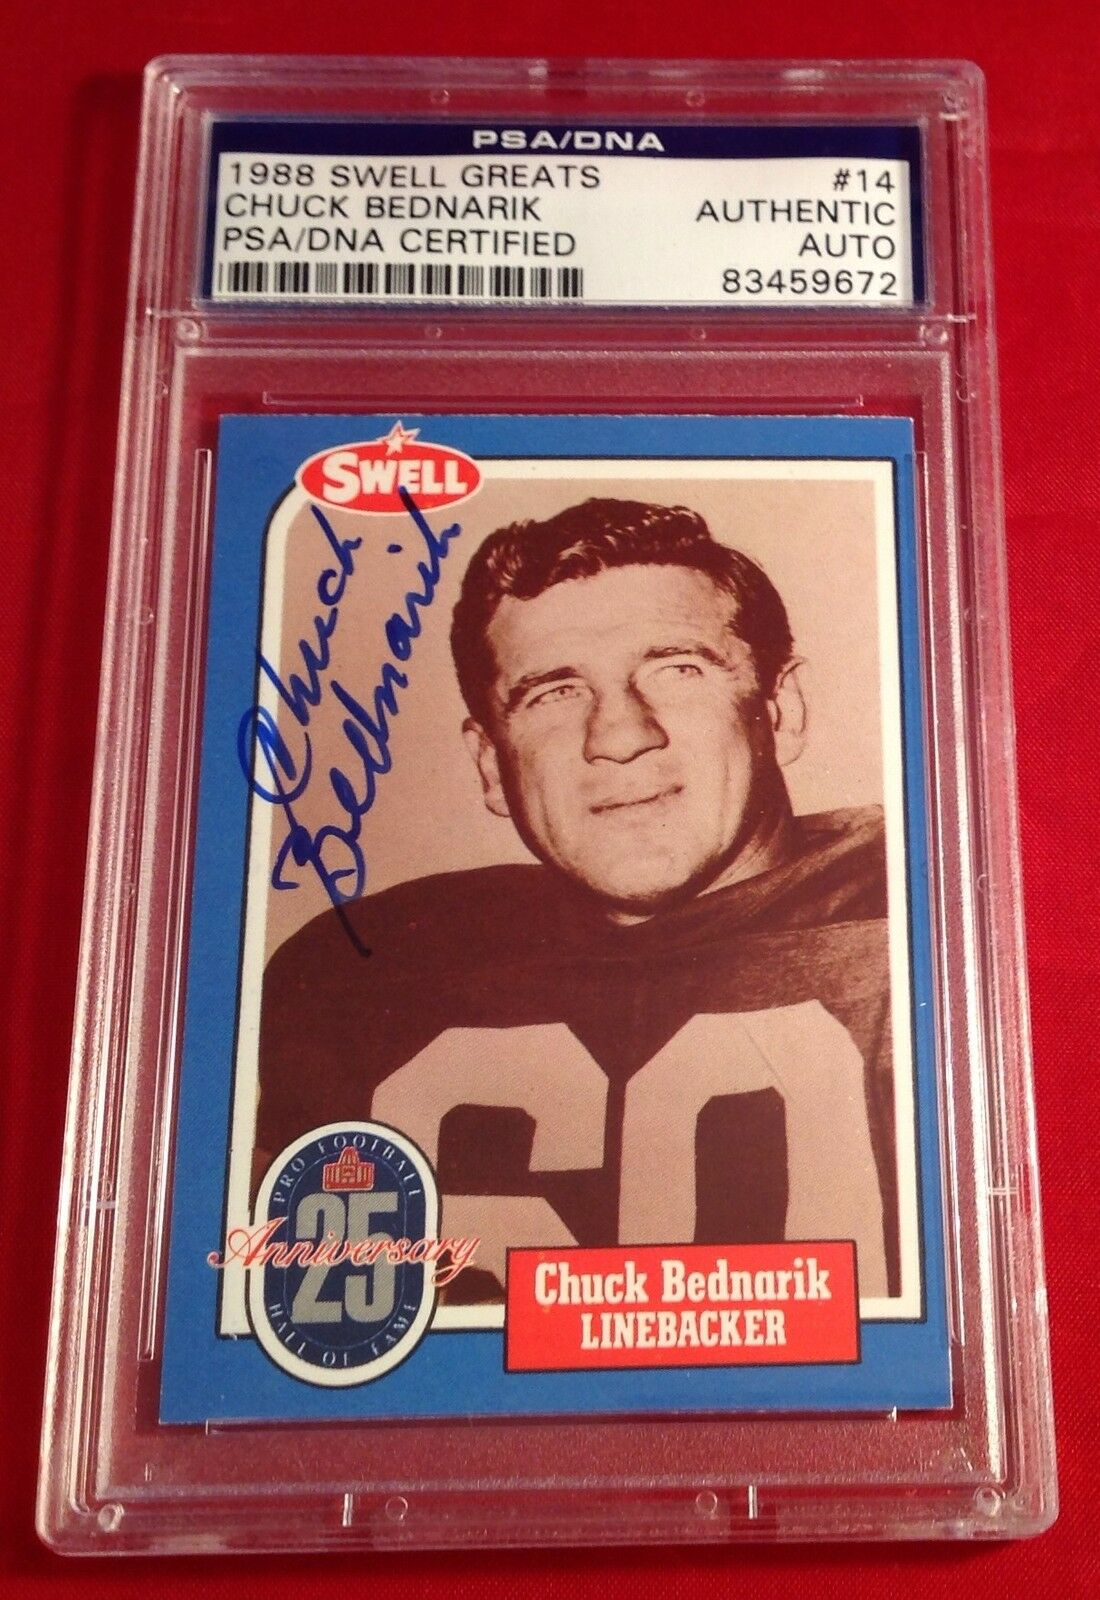 Chuck Bednarik 1988 Swell Greats Card PSA/DNA Slabbed #83459672